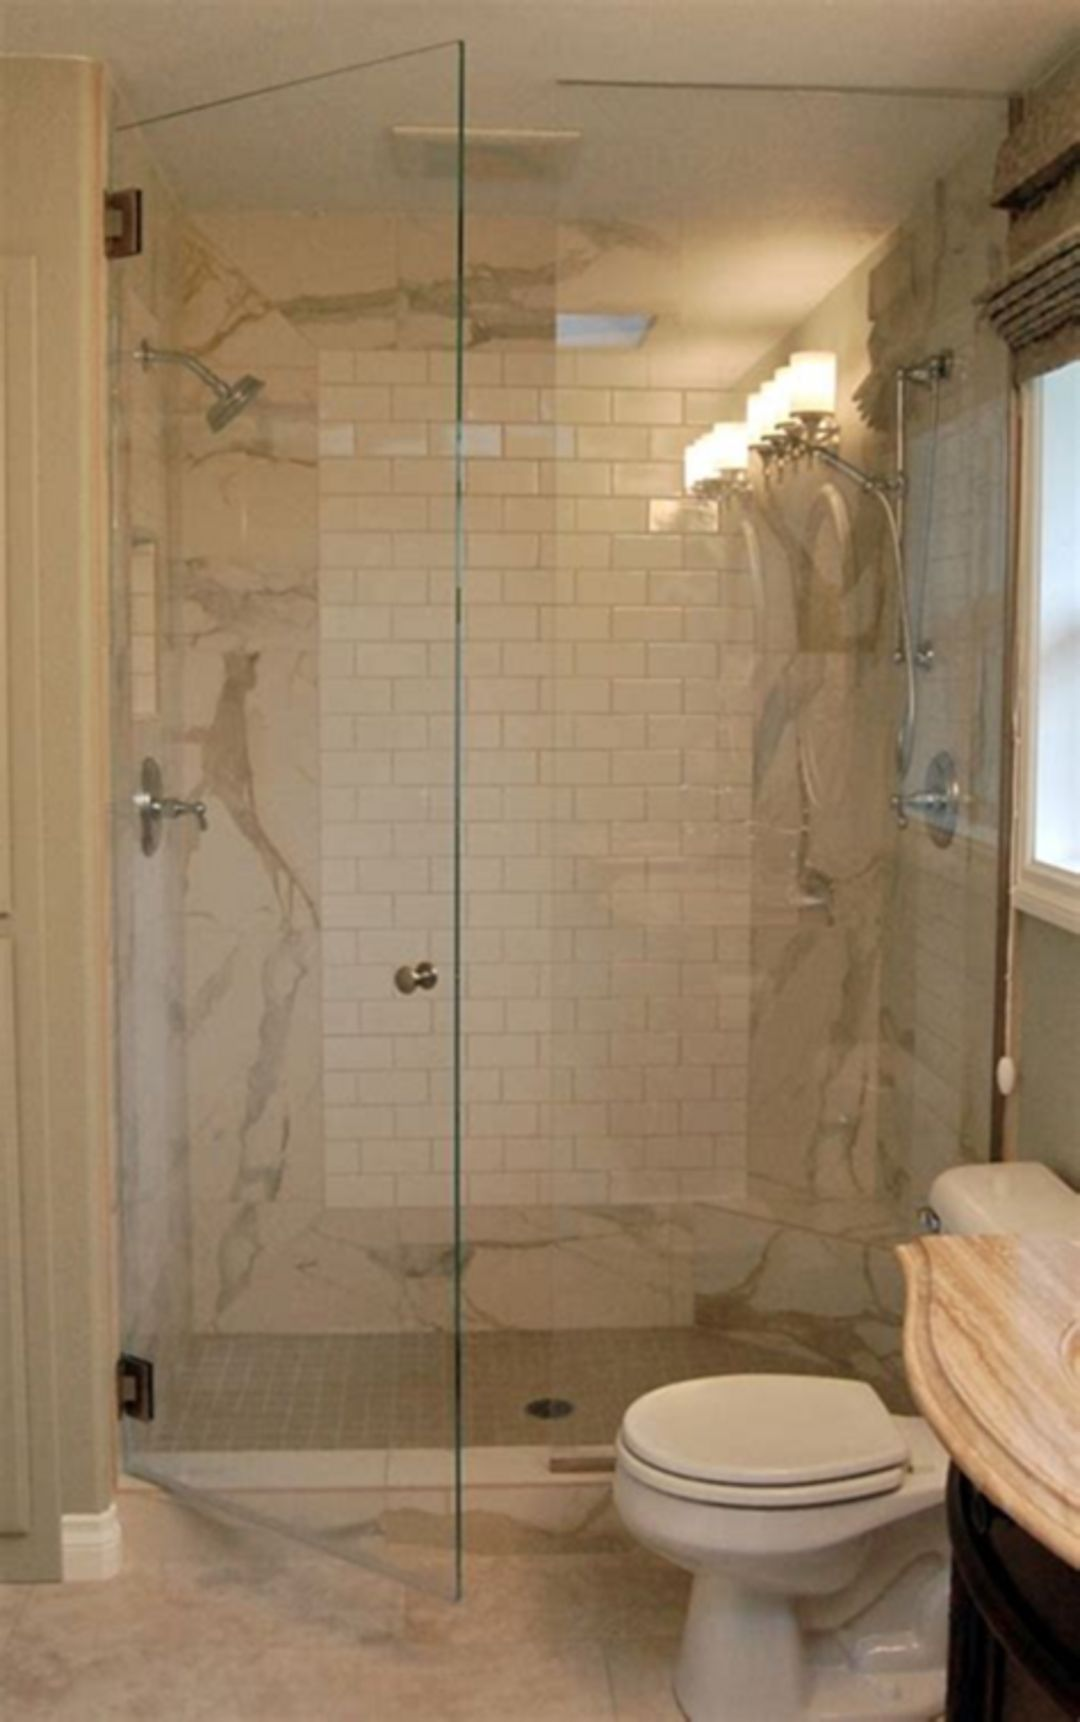 20 top stand up shower design for small bathroom ideas